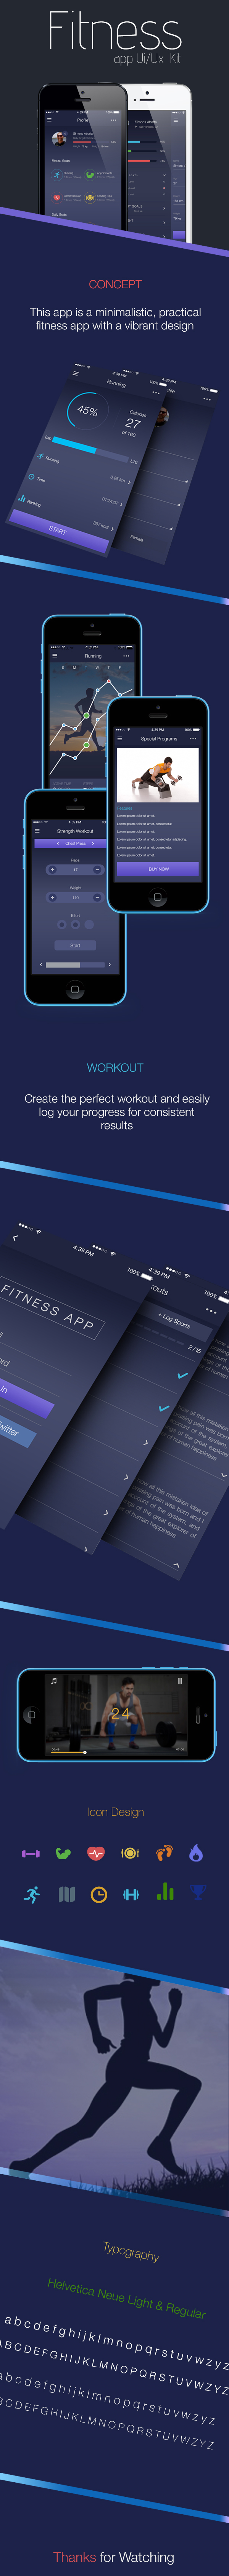 Free Fitness App UI Kit PSD